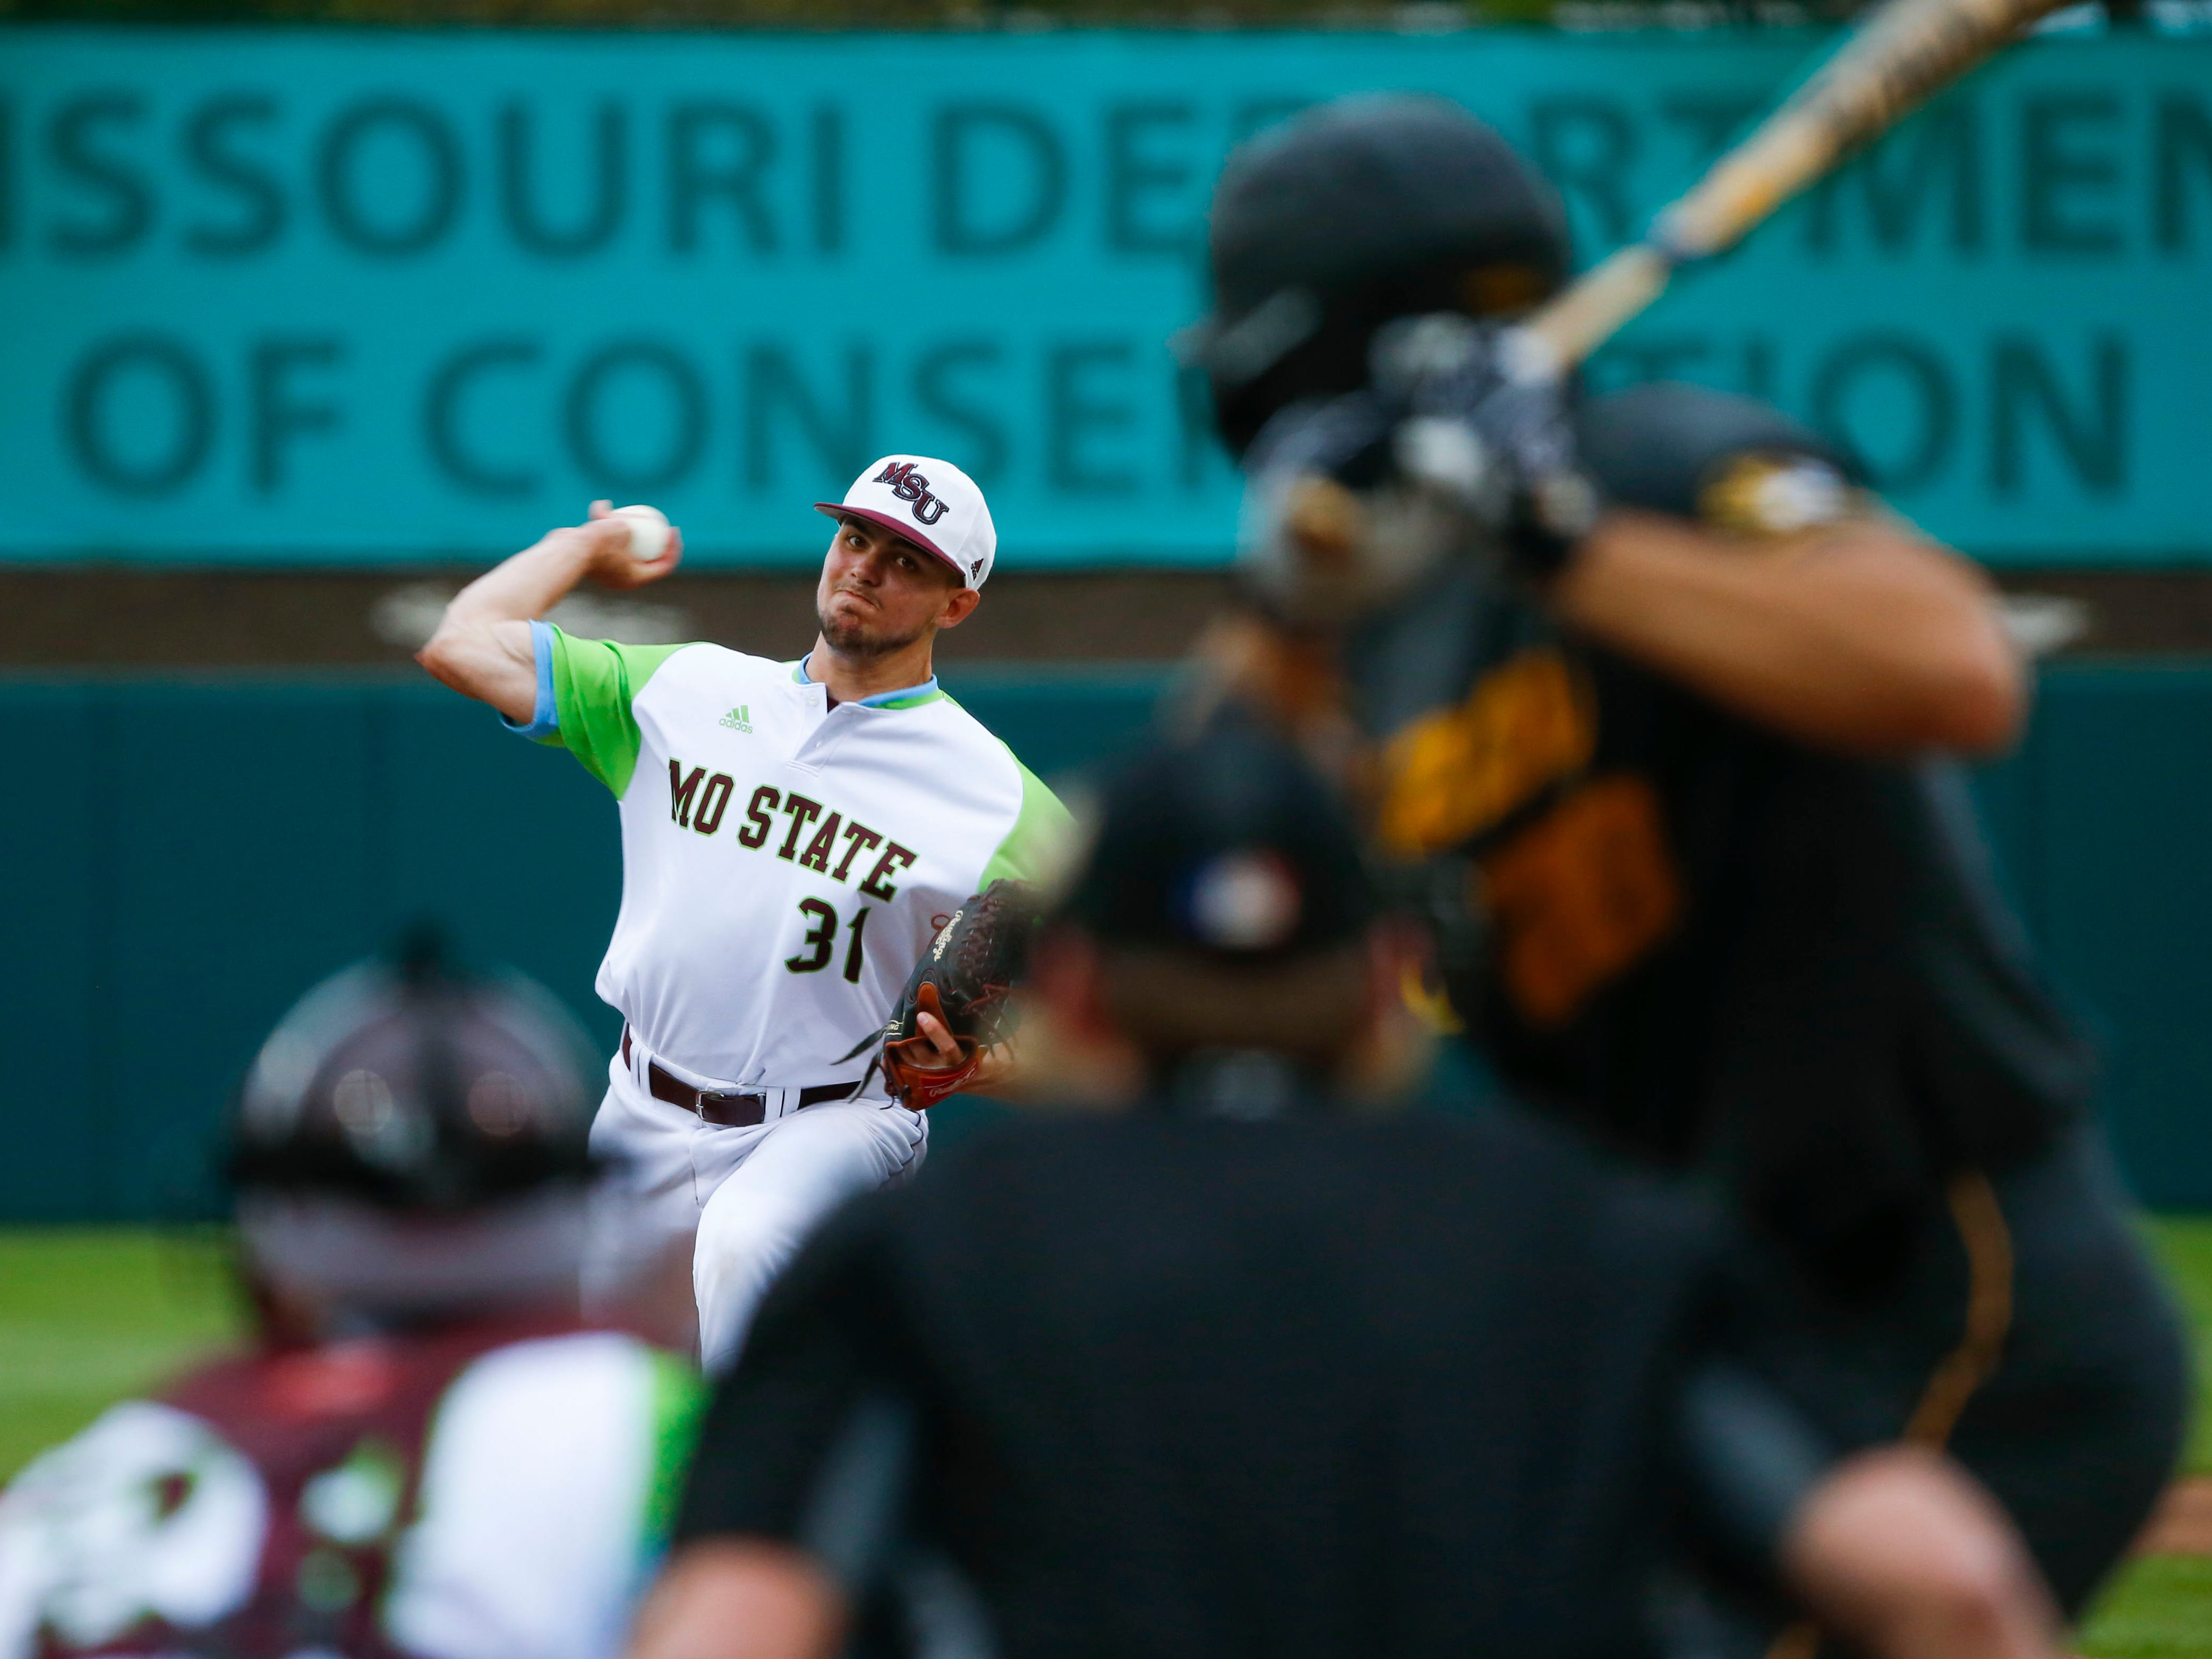 Missouri State starting pitcher Forrest Barnes delivers a pitch to the plate as the Bears take on the Mizzou Tigers at Hammons Field on Tuesday, April 16, 2019.